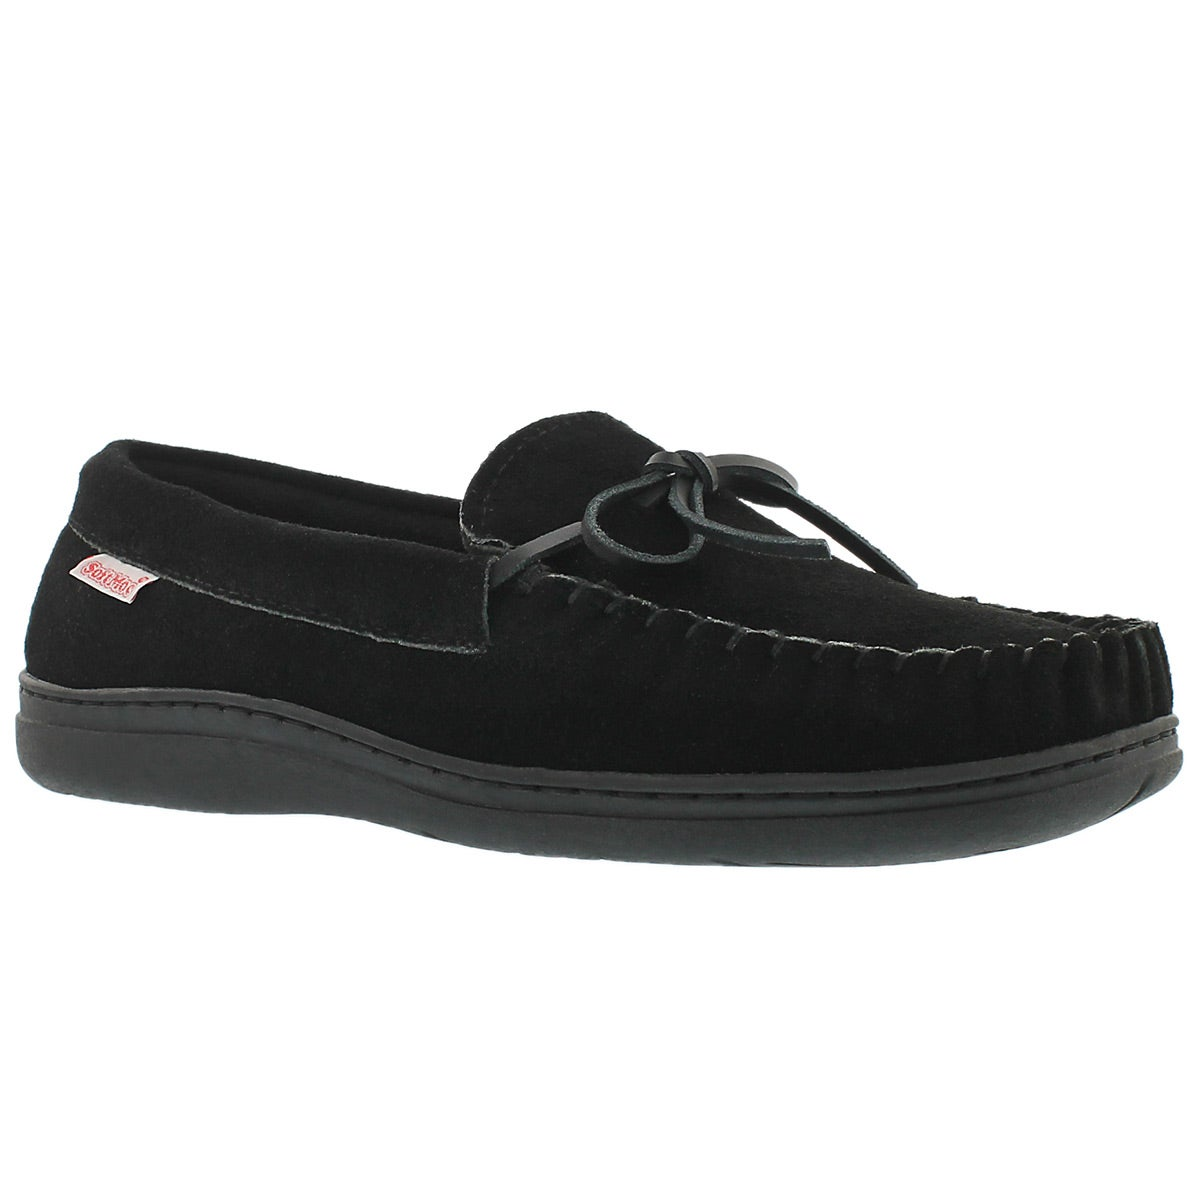 Men's DUSK black suede moccasins